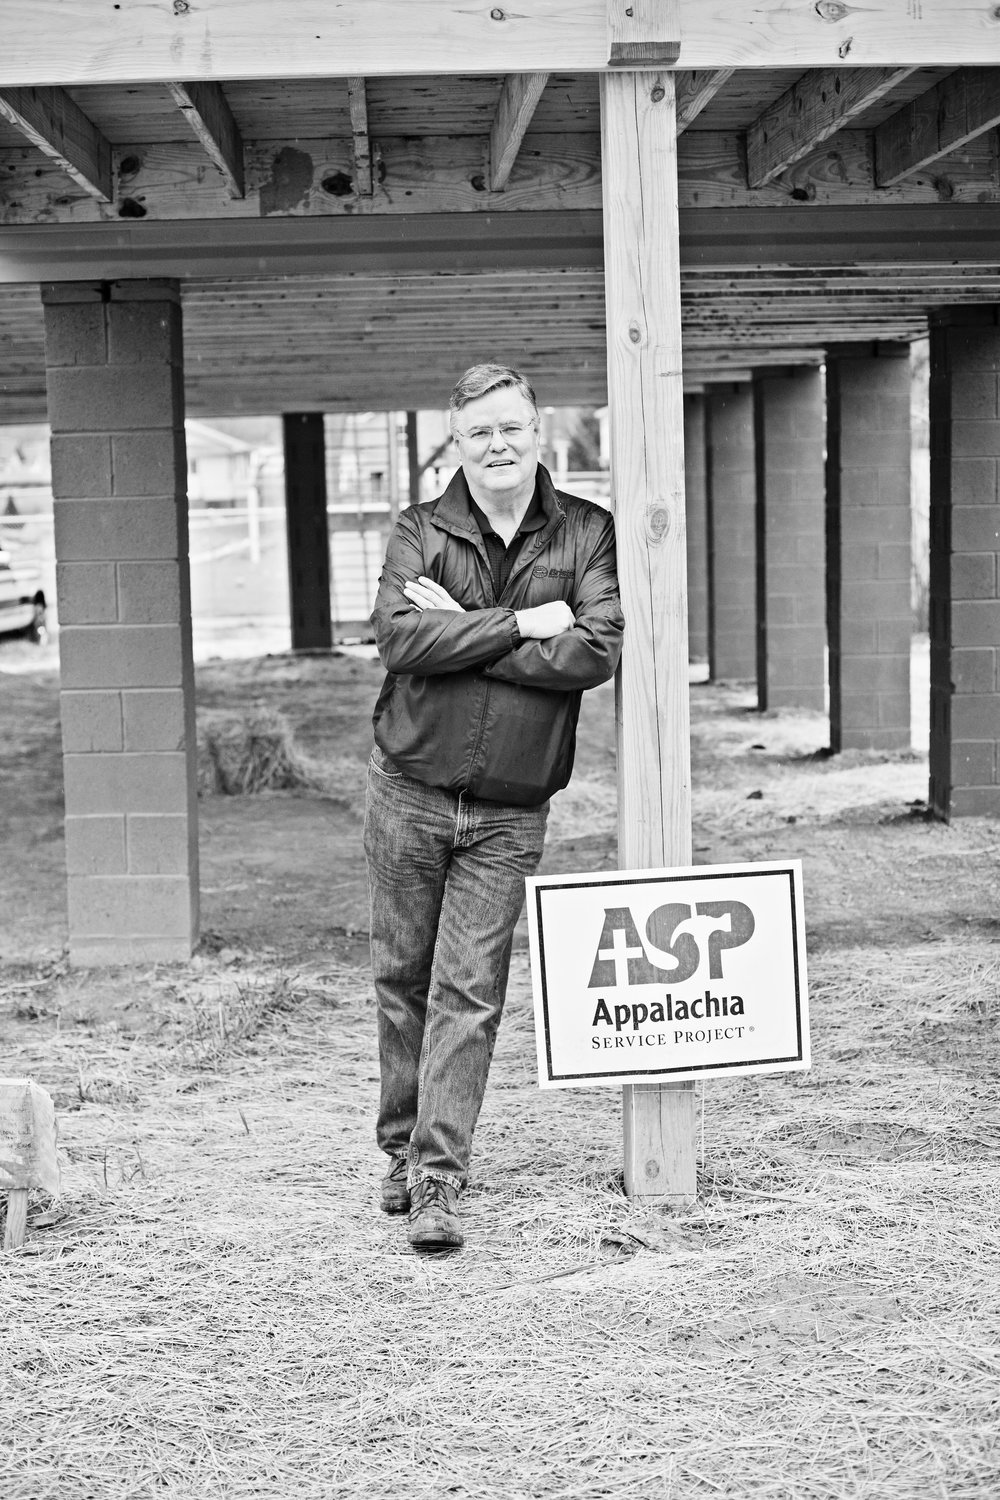 "52 - Walter Crouch, President and CEO of Appalachia Service Project (ASP), has been a leading force in the rebuilding of Rainelle over the past year, having already put 23 homes under roof since the flood, and another 29 ready to go, bringing the total to 52 homes. Since 1969, ASP has brought thousands of volunteers from around the country to rural Central Appalachia to repair homes for low-income families, making them ""warmer, safer, and drier."""